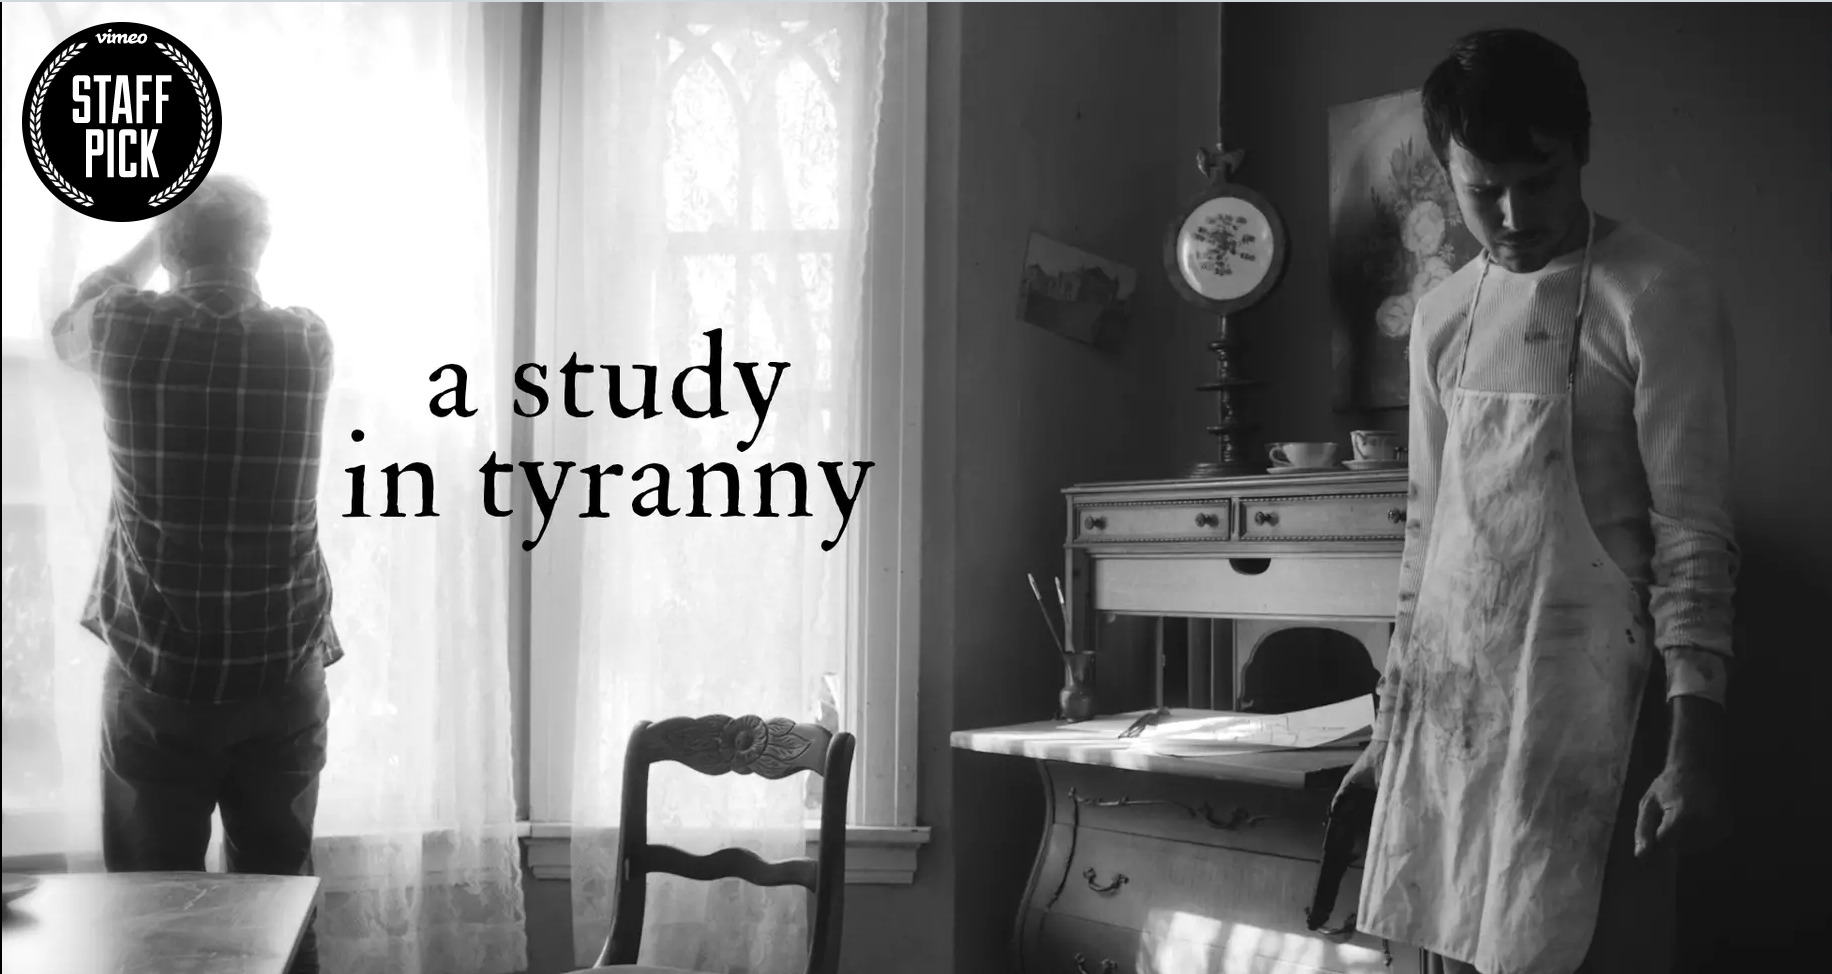 A Study in Tyranny